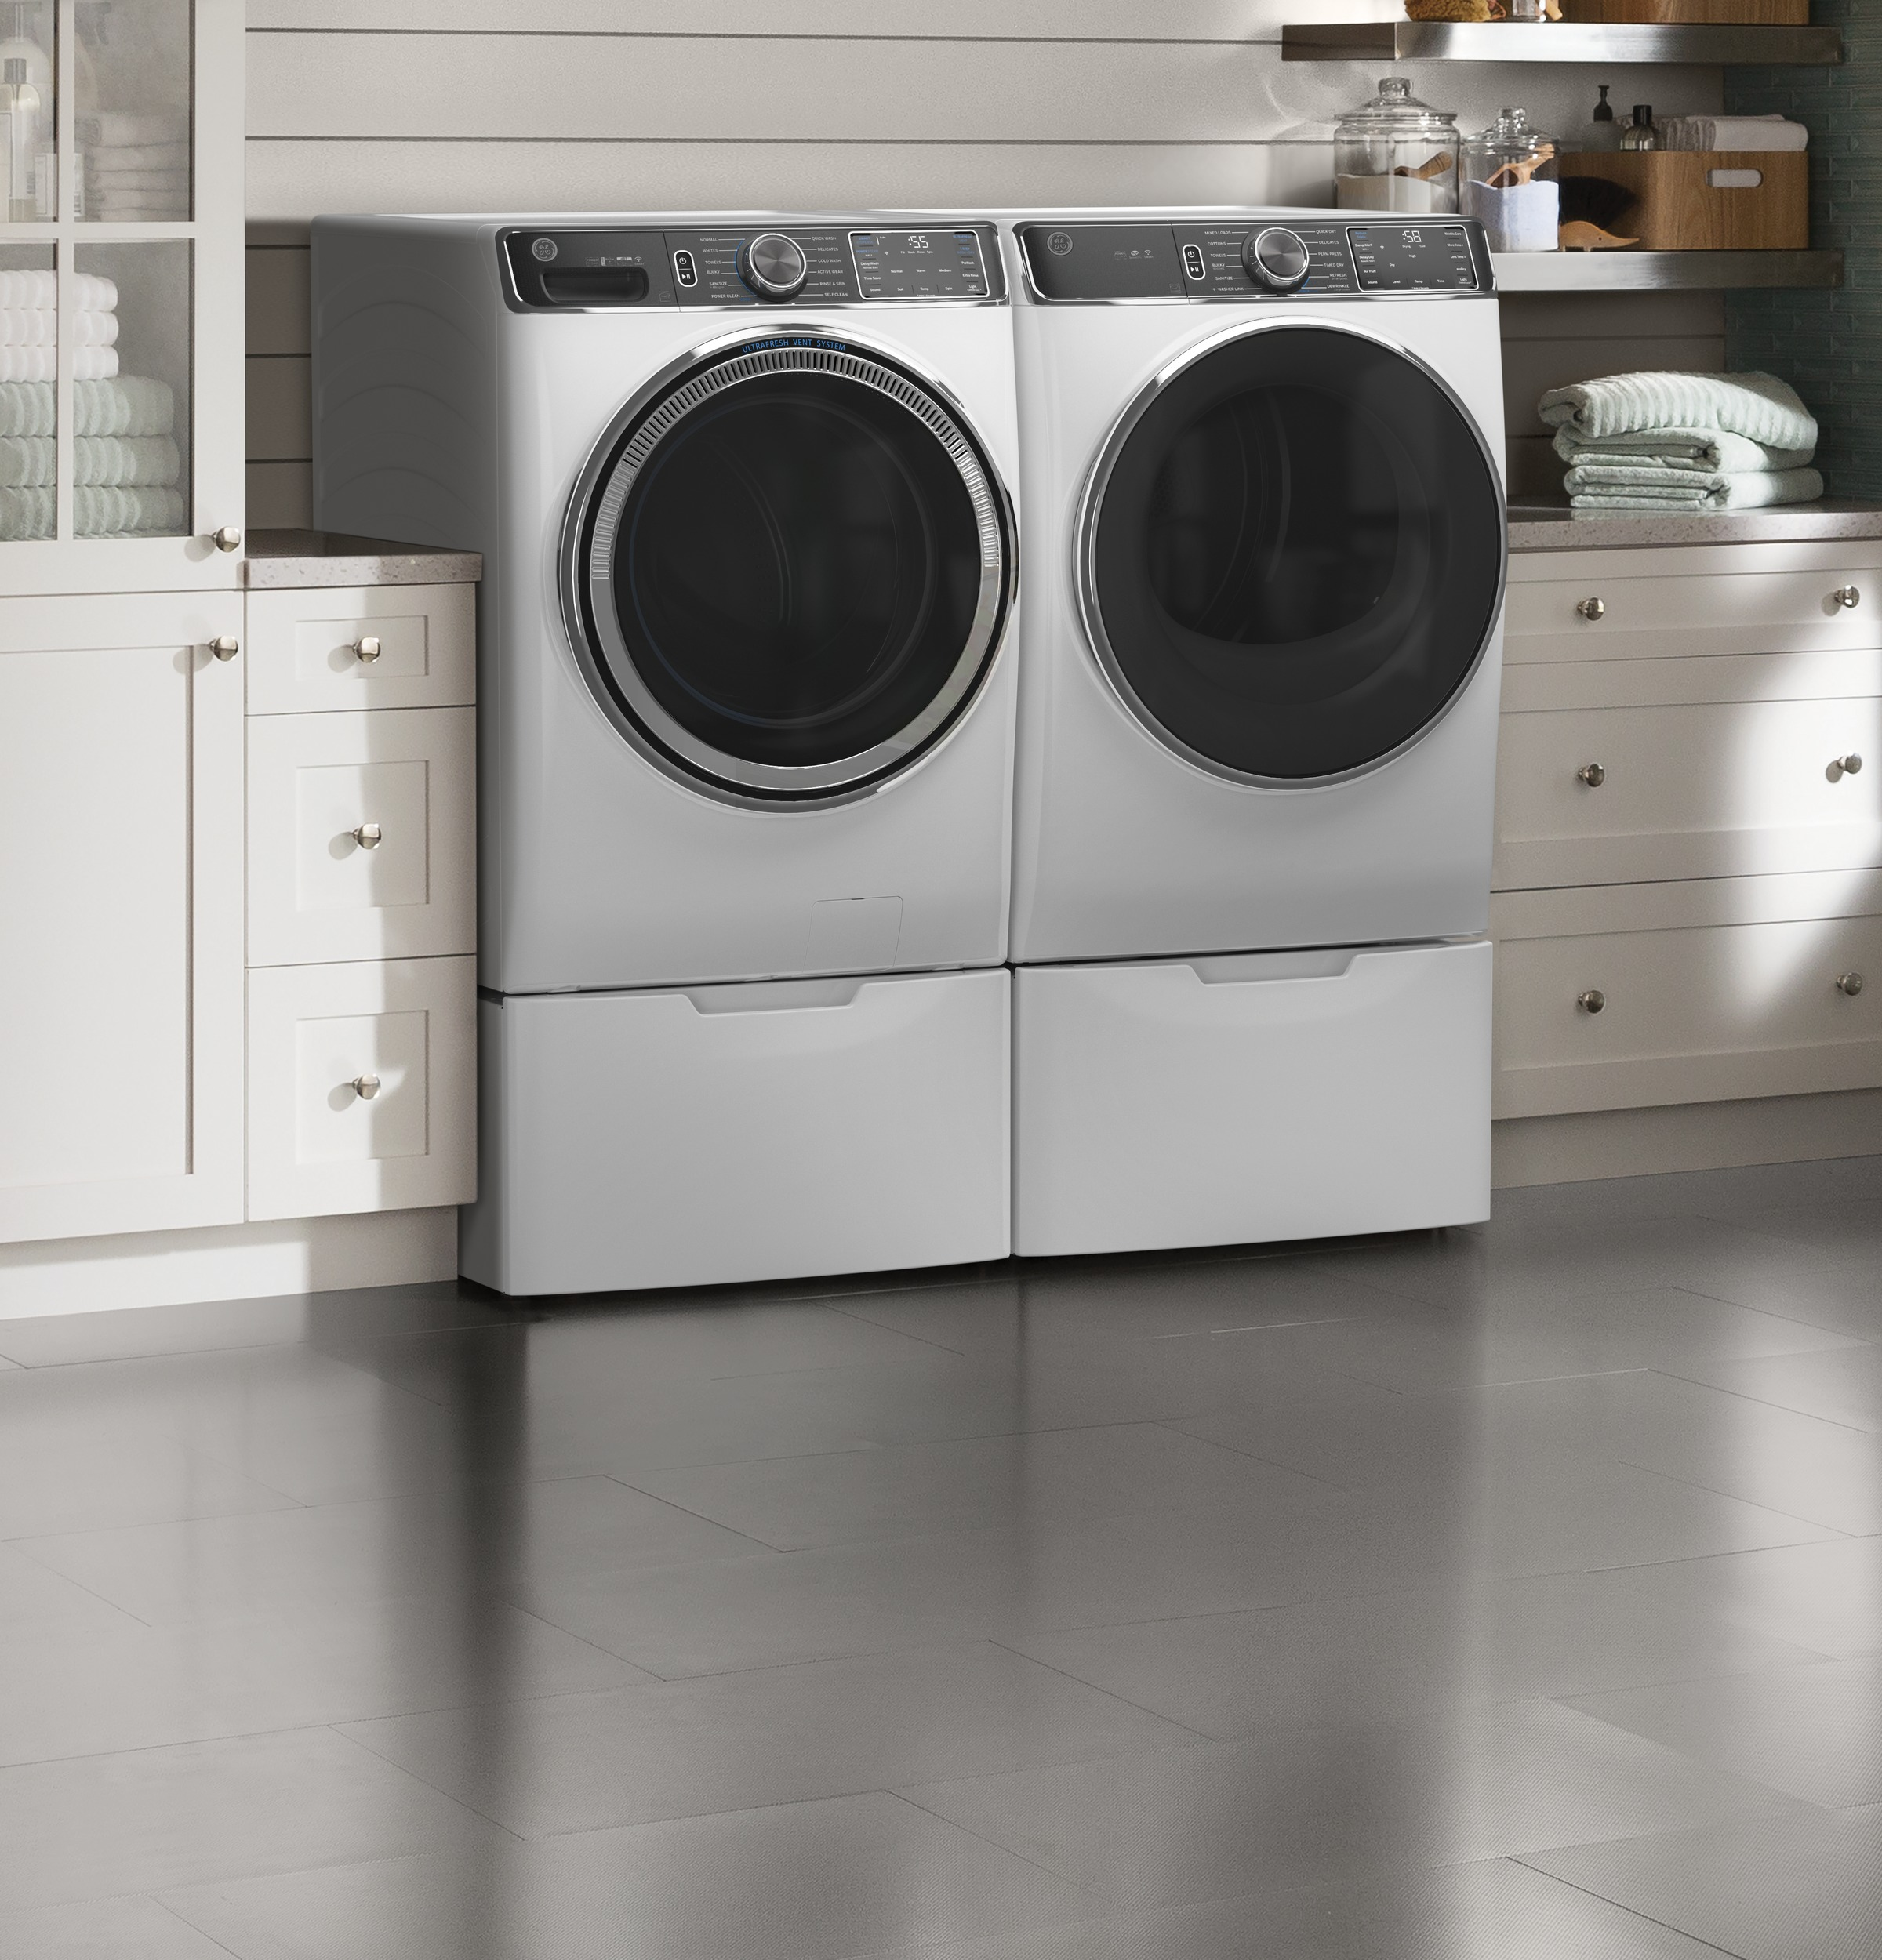 Model: GFD85ESSNWW | GE GE® 7.8 cu. ft. Capacity Smart Front Load Electric Dryer with Steam and Sanitize Cycle